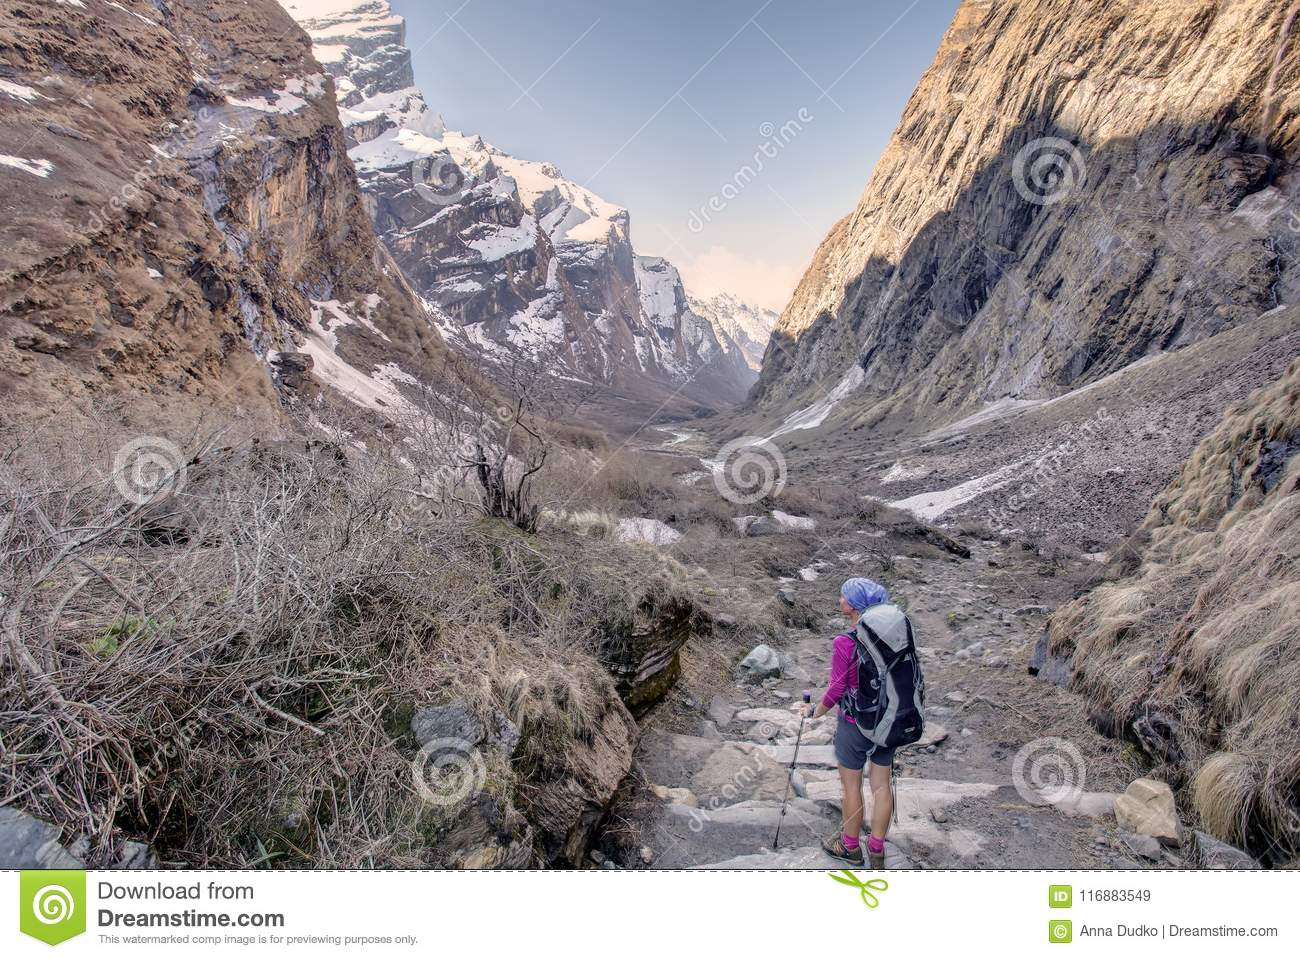 Trekker in the valley on the way to Annapurna base camp, Nepal